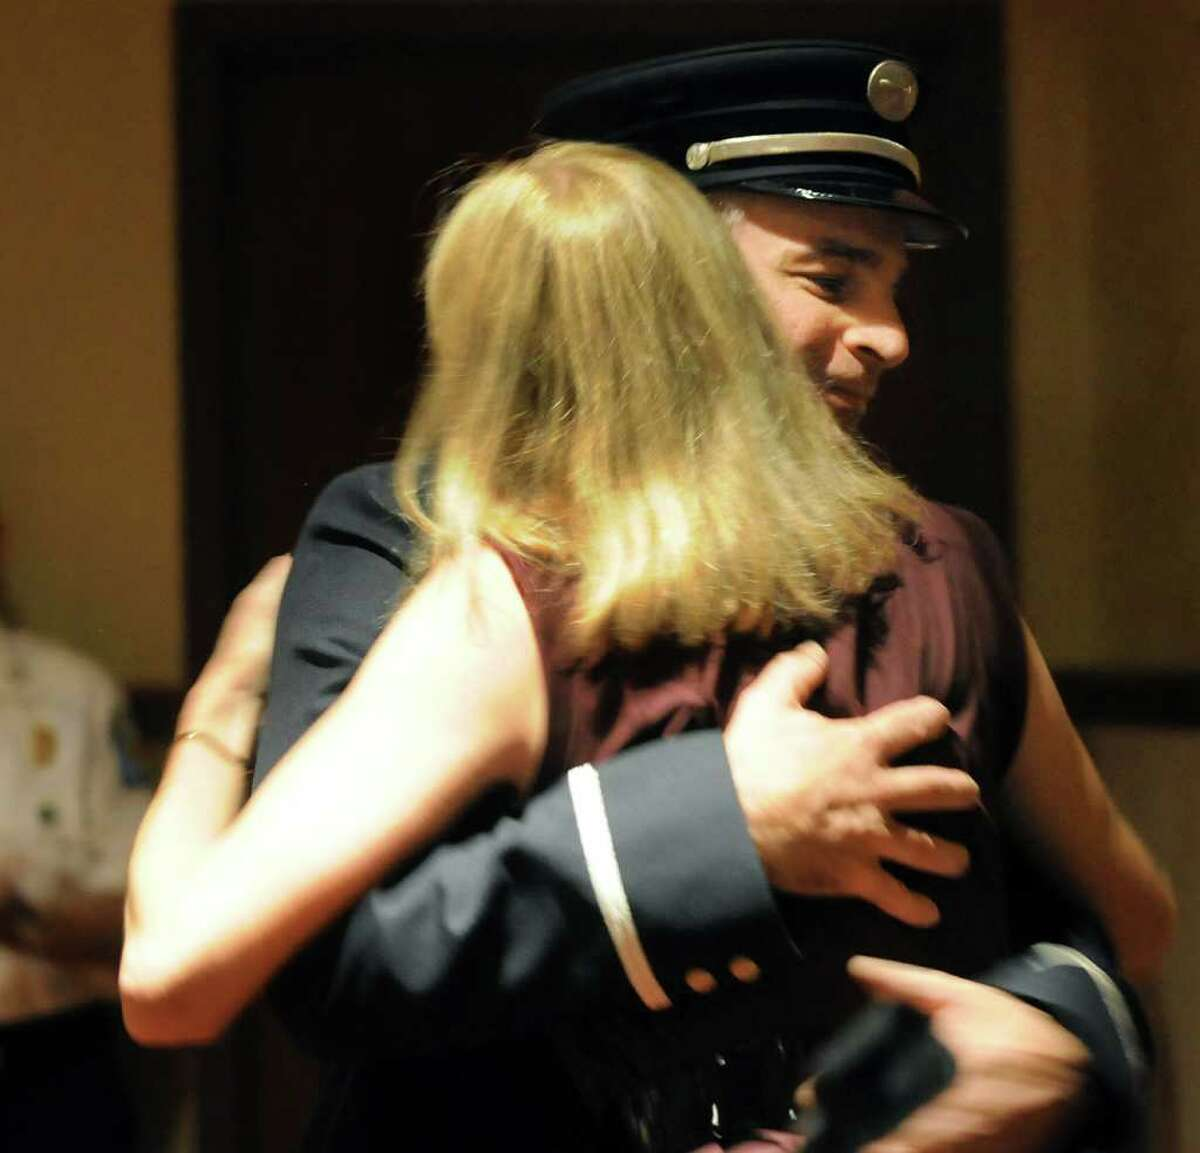 Newly promoted to captain, Paul Denio hugs his wife Melanie on Thursday, July 21, 2011, at the Hilton Garden Inn in Troy, N.Y. The Troy Fire Department promoted eight officers. (Cindy Schultz / Times Union)